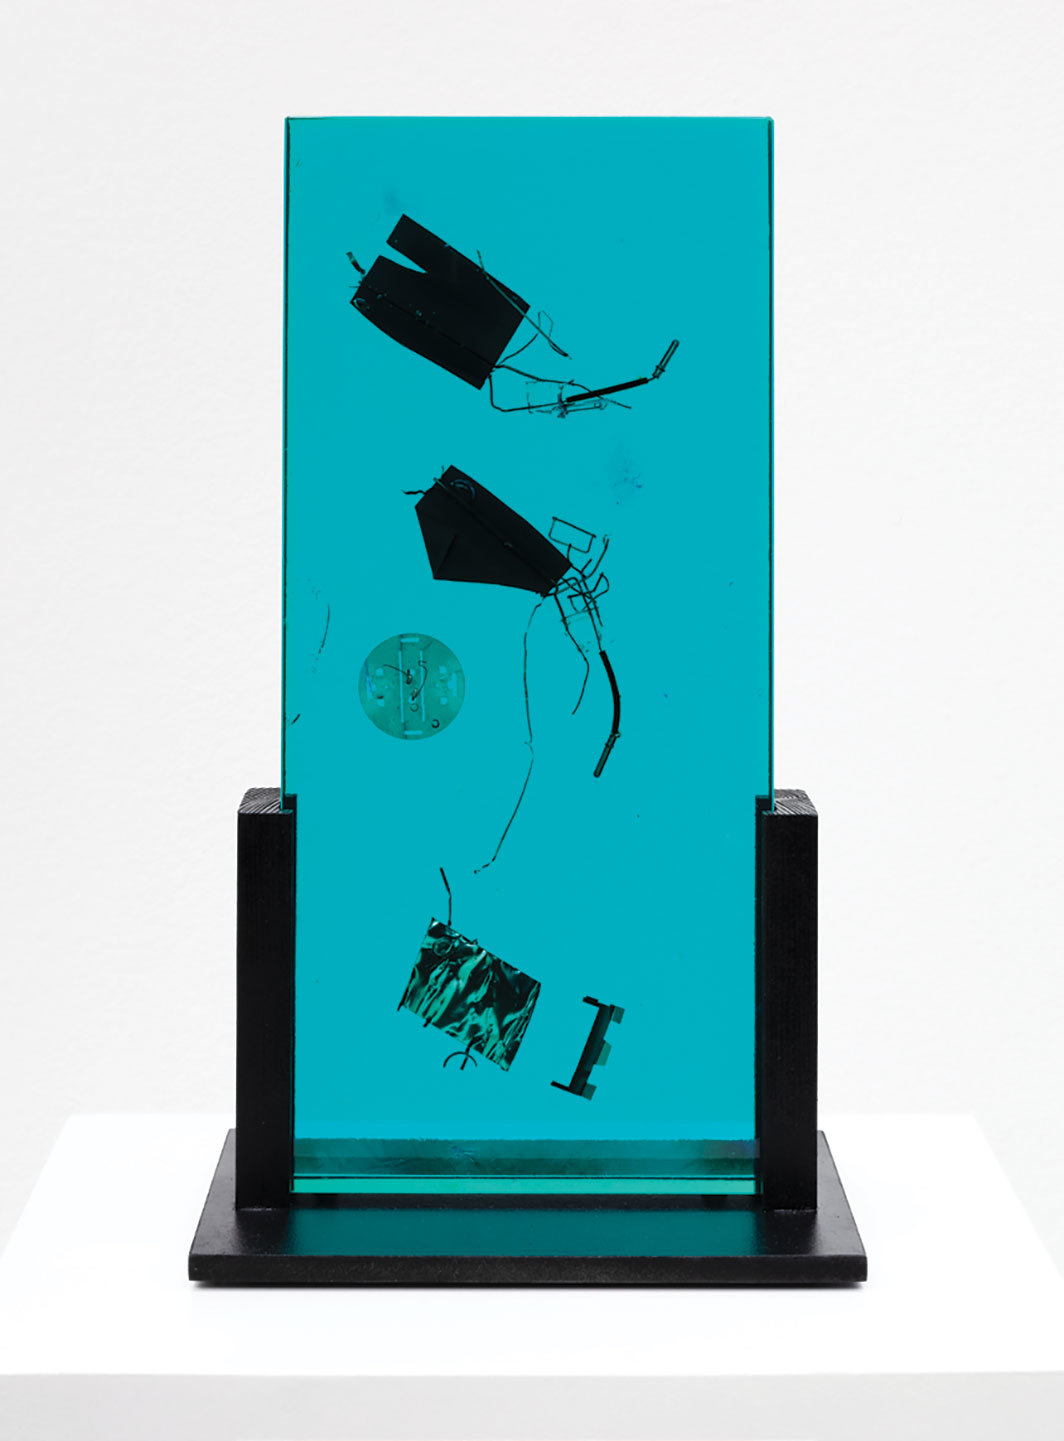 "Bruno Munari, Fossile del 2000 (Fossil of the Year 2000), 1991, Plexiglas, metal, 14 1⁄4 × 8 1⁄8 × 4 3⁄4""."